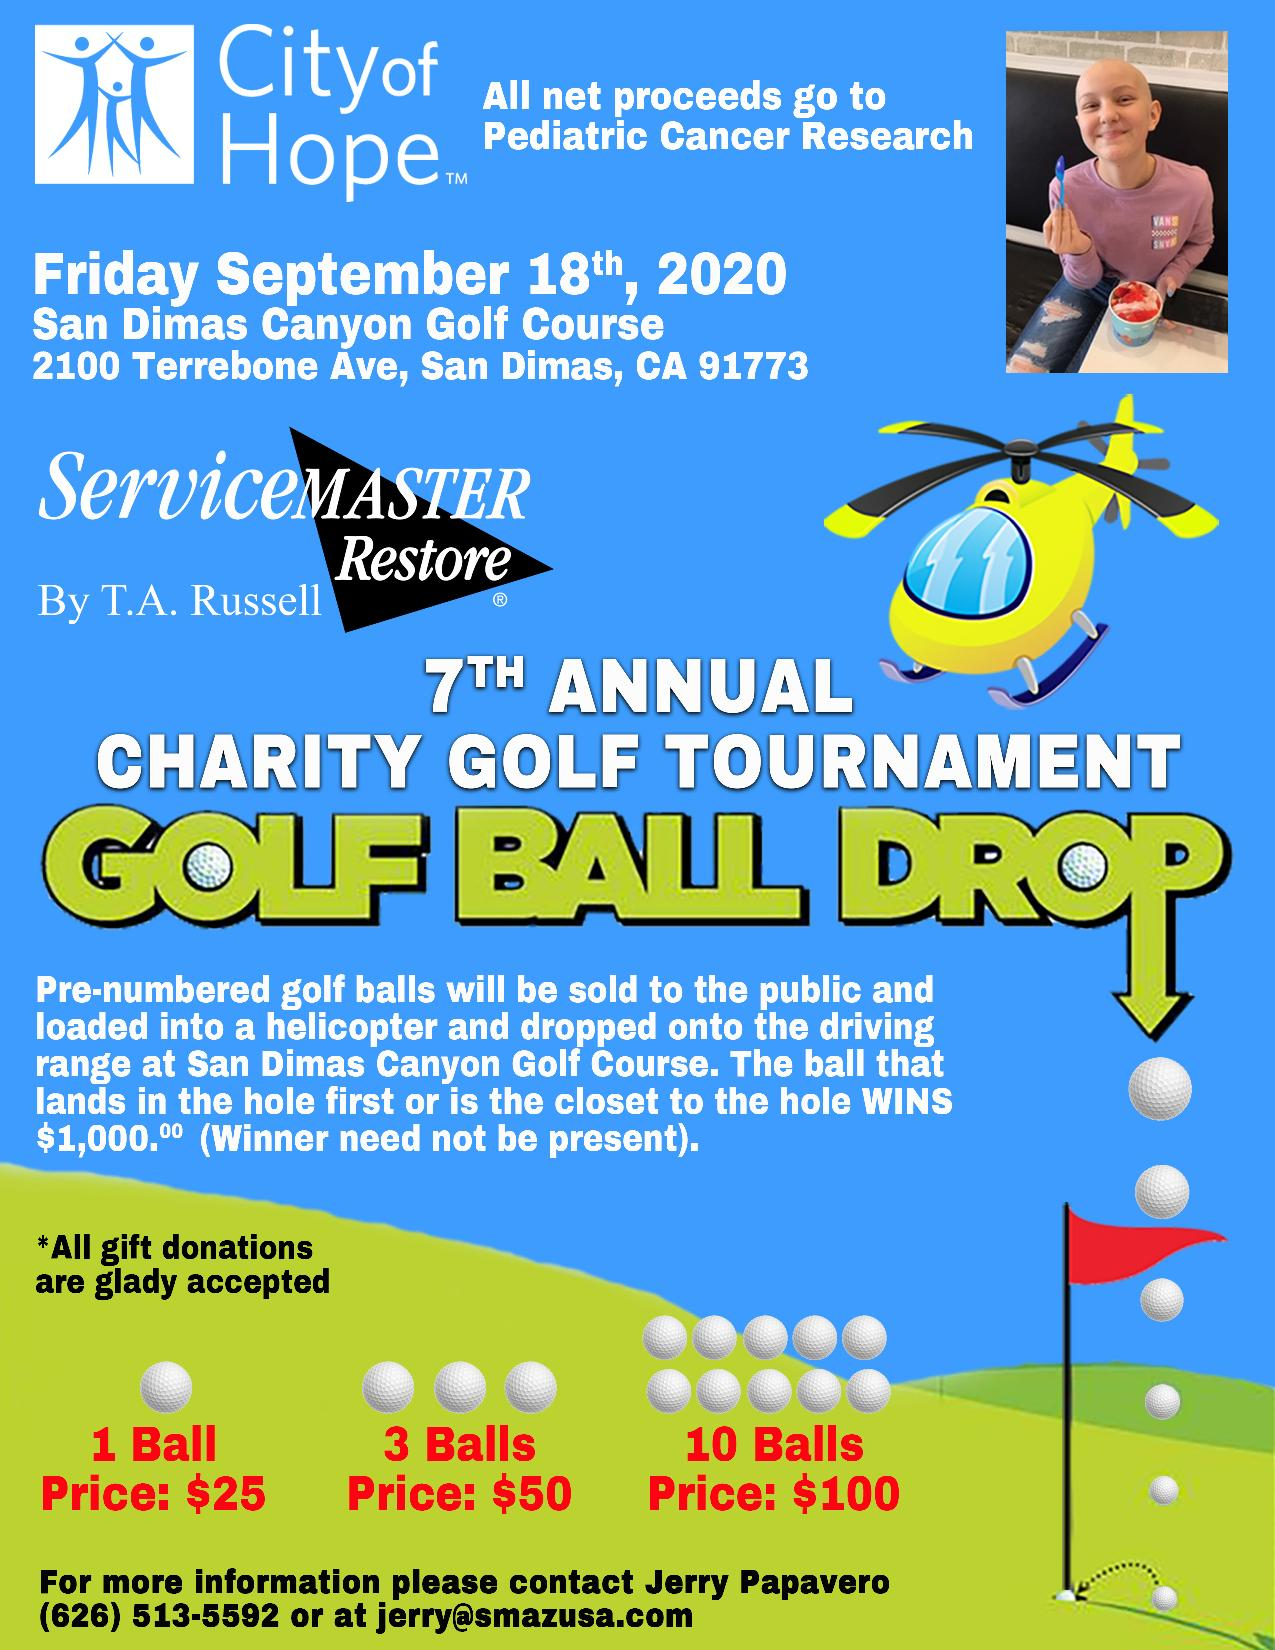 2020 Golf Tournament - helicopter Golf Ball Drop by ServiceMaster by T.A. Russell